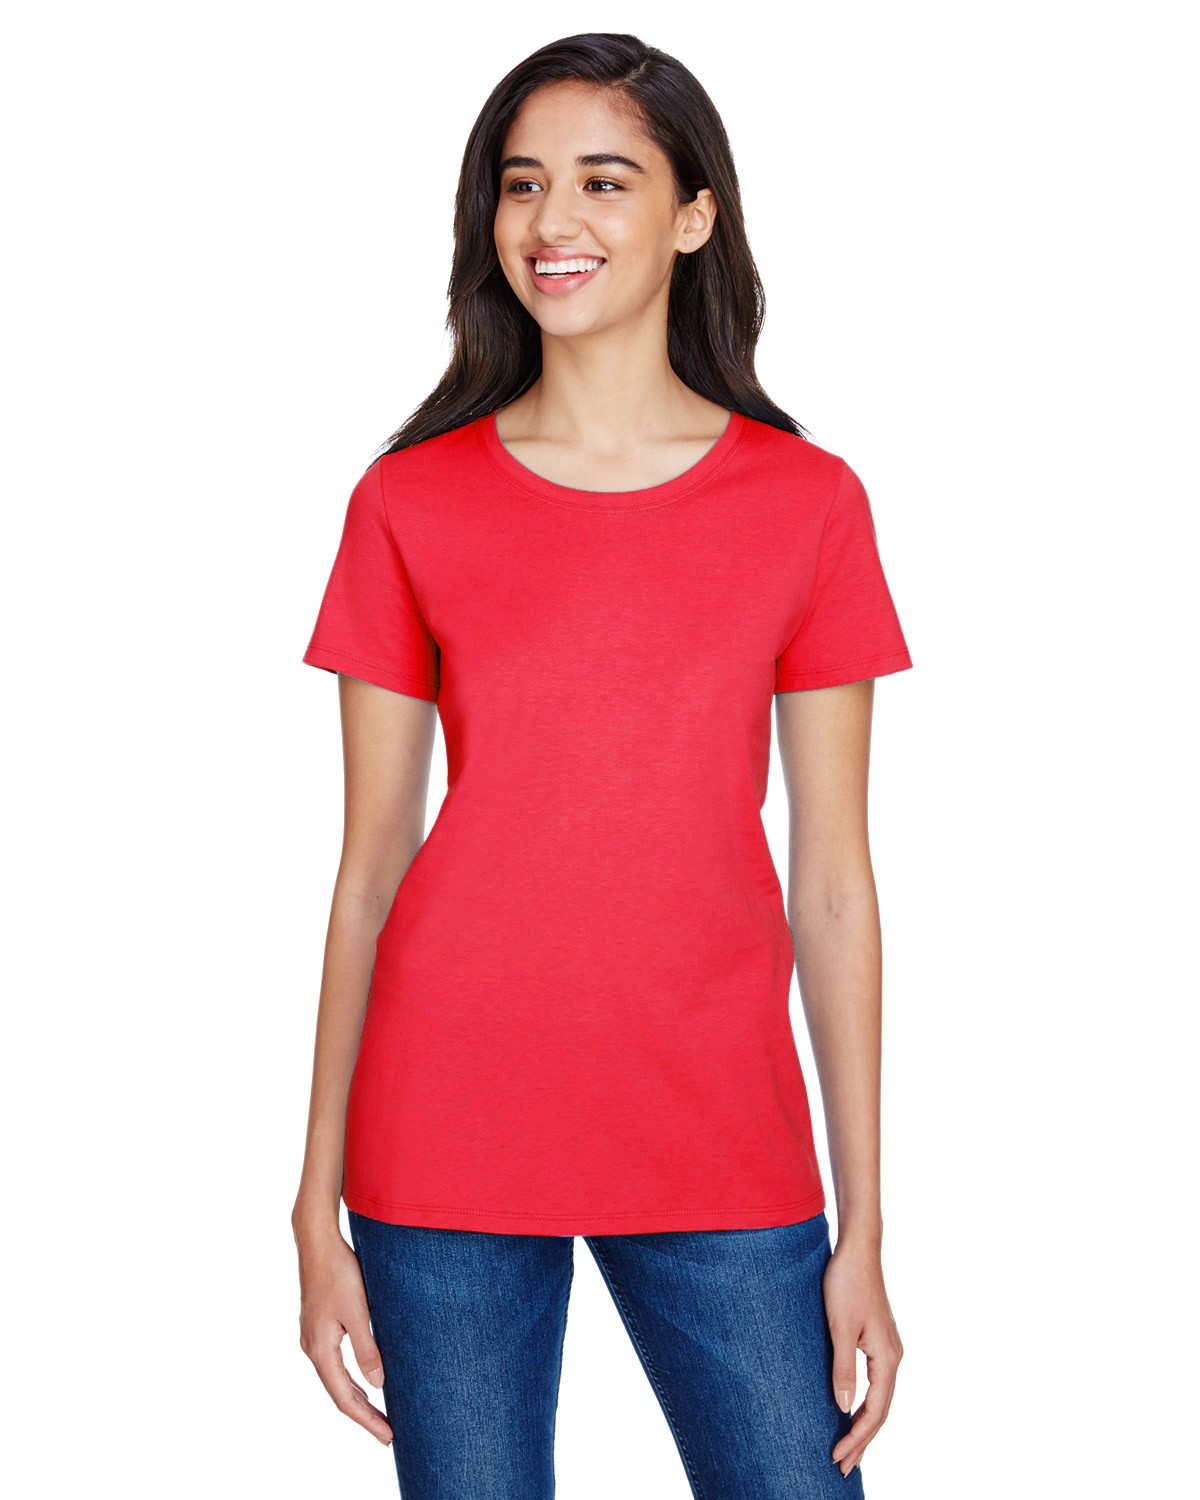 CP20 Champion Athletic Red